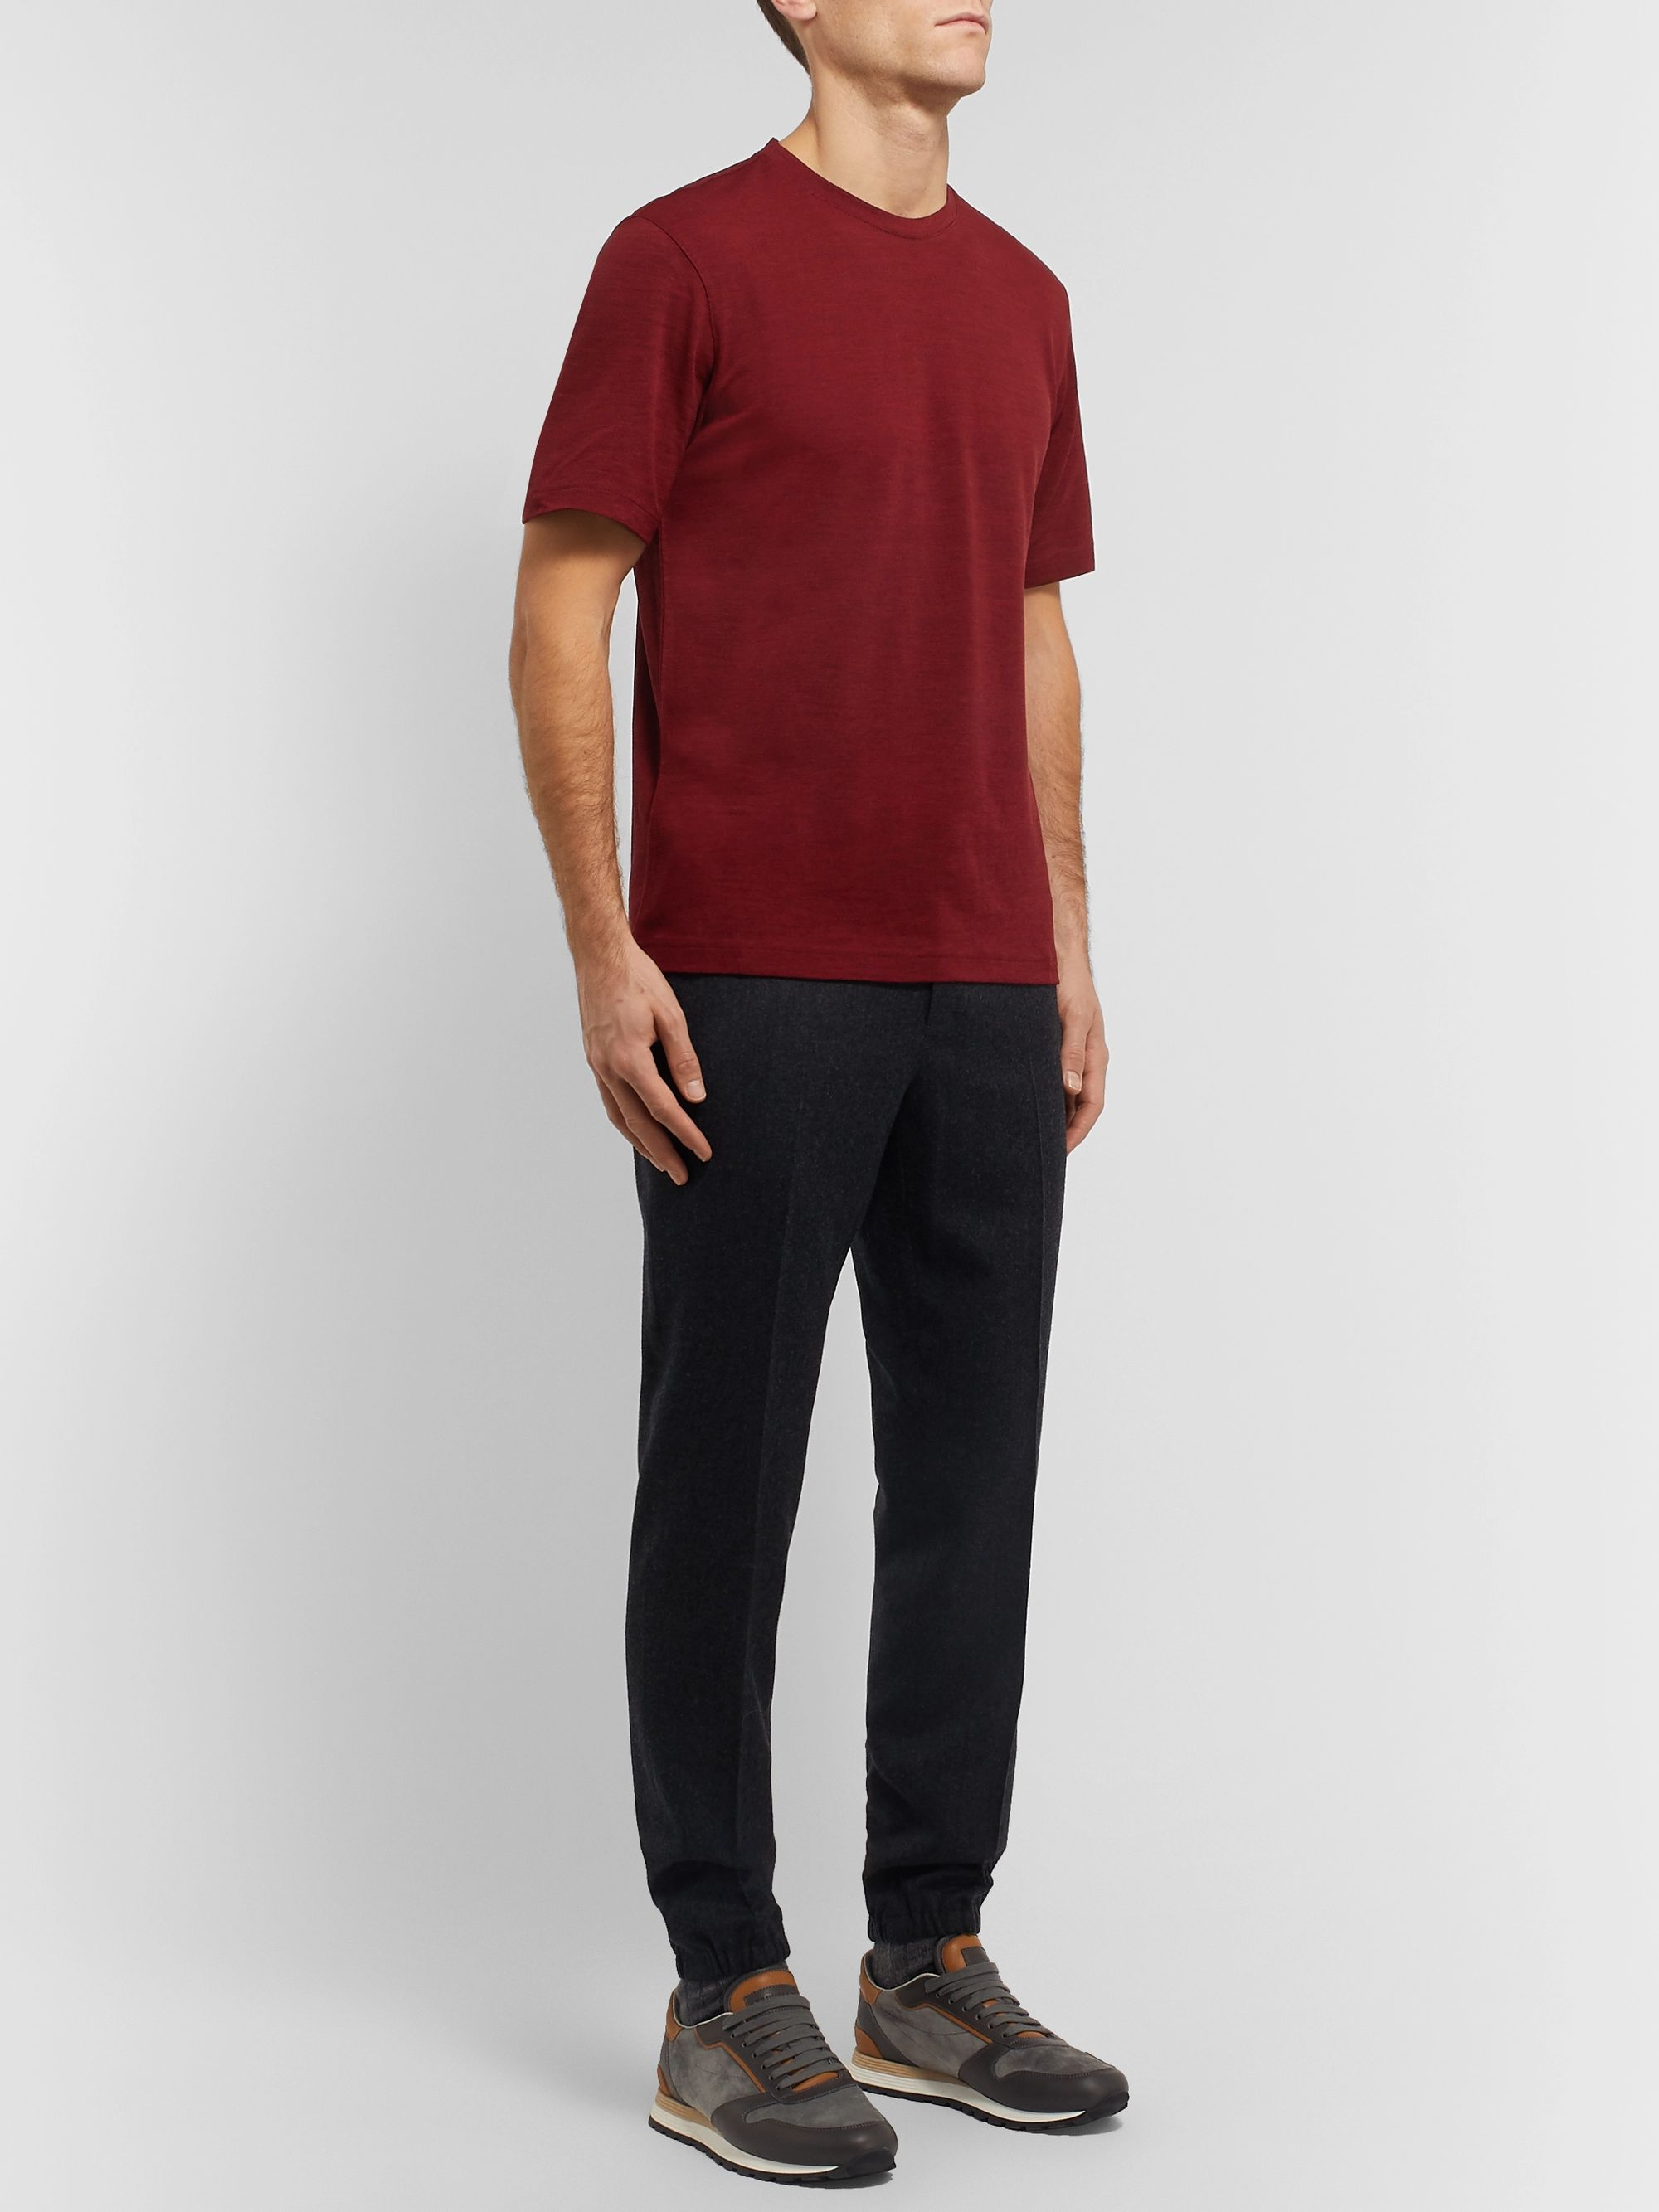 Z Zegna Mélange TECHMERINO Wool T-Shirt